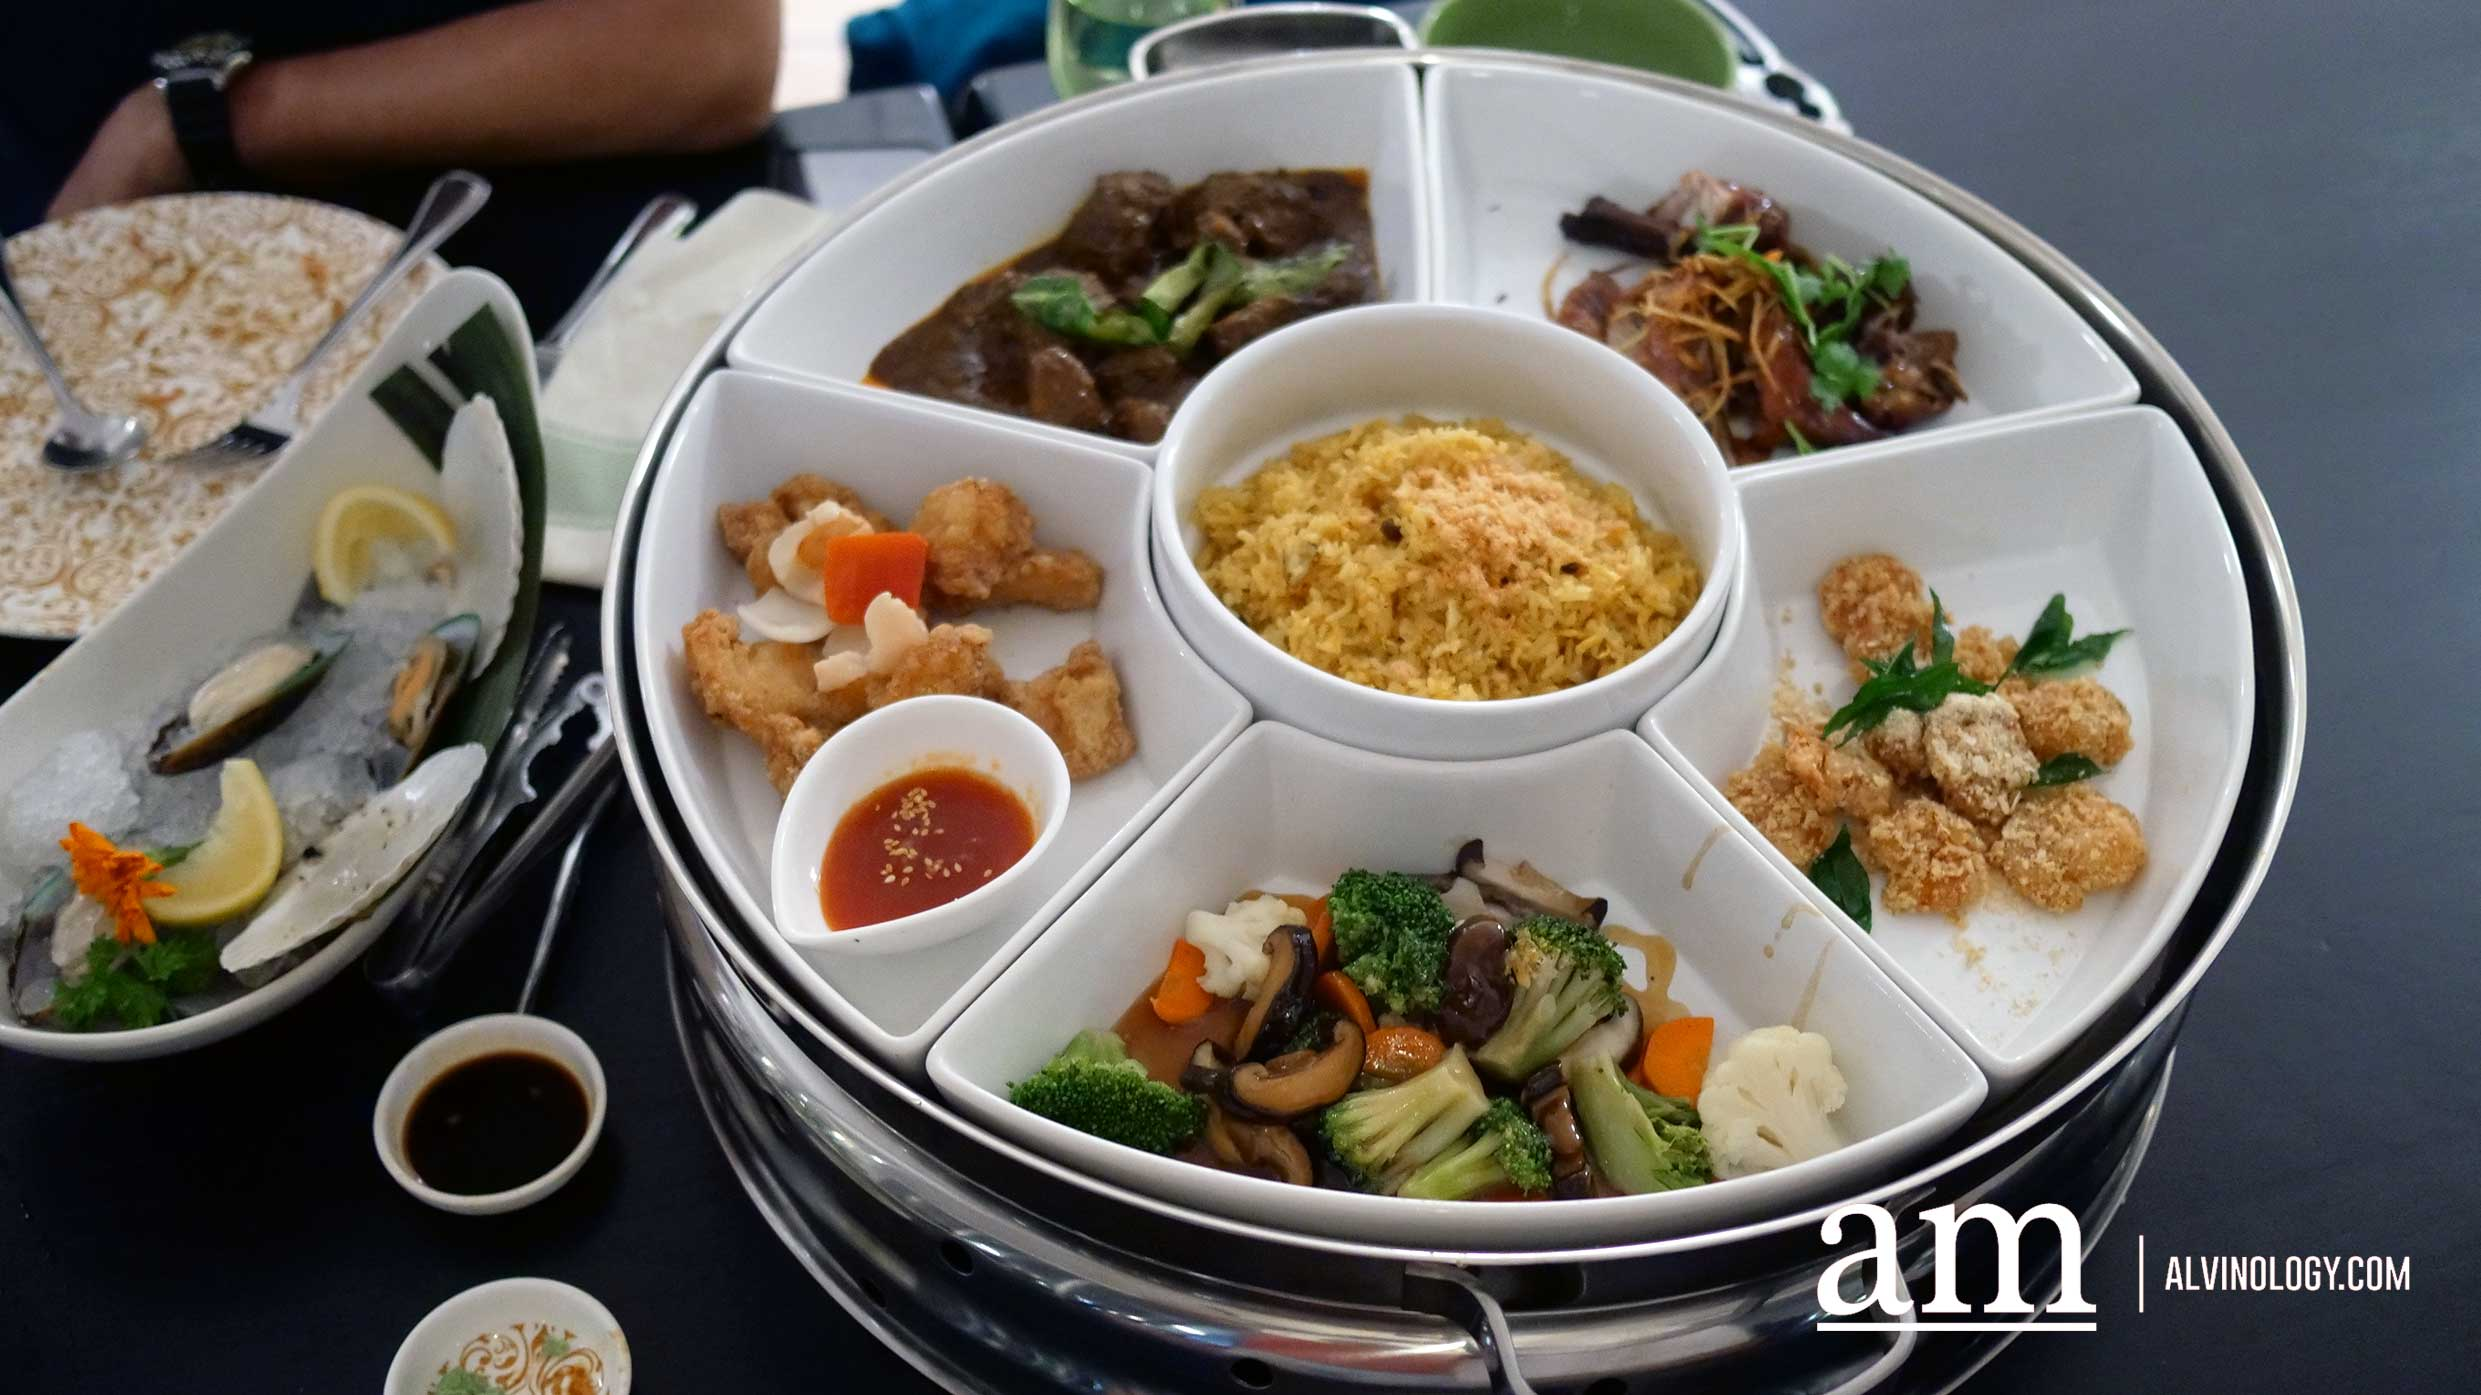 Asian Market Cafe @ Fairmont Singapore Reopens with Brand New A La Carte Buffet Concept - Alvinology